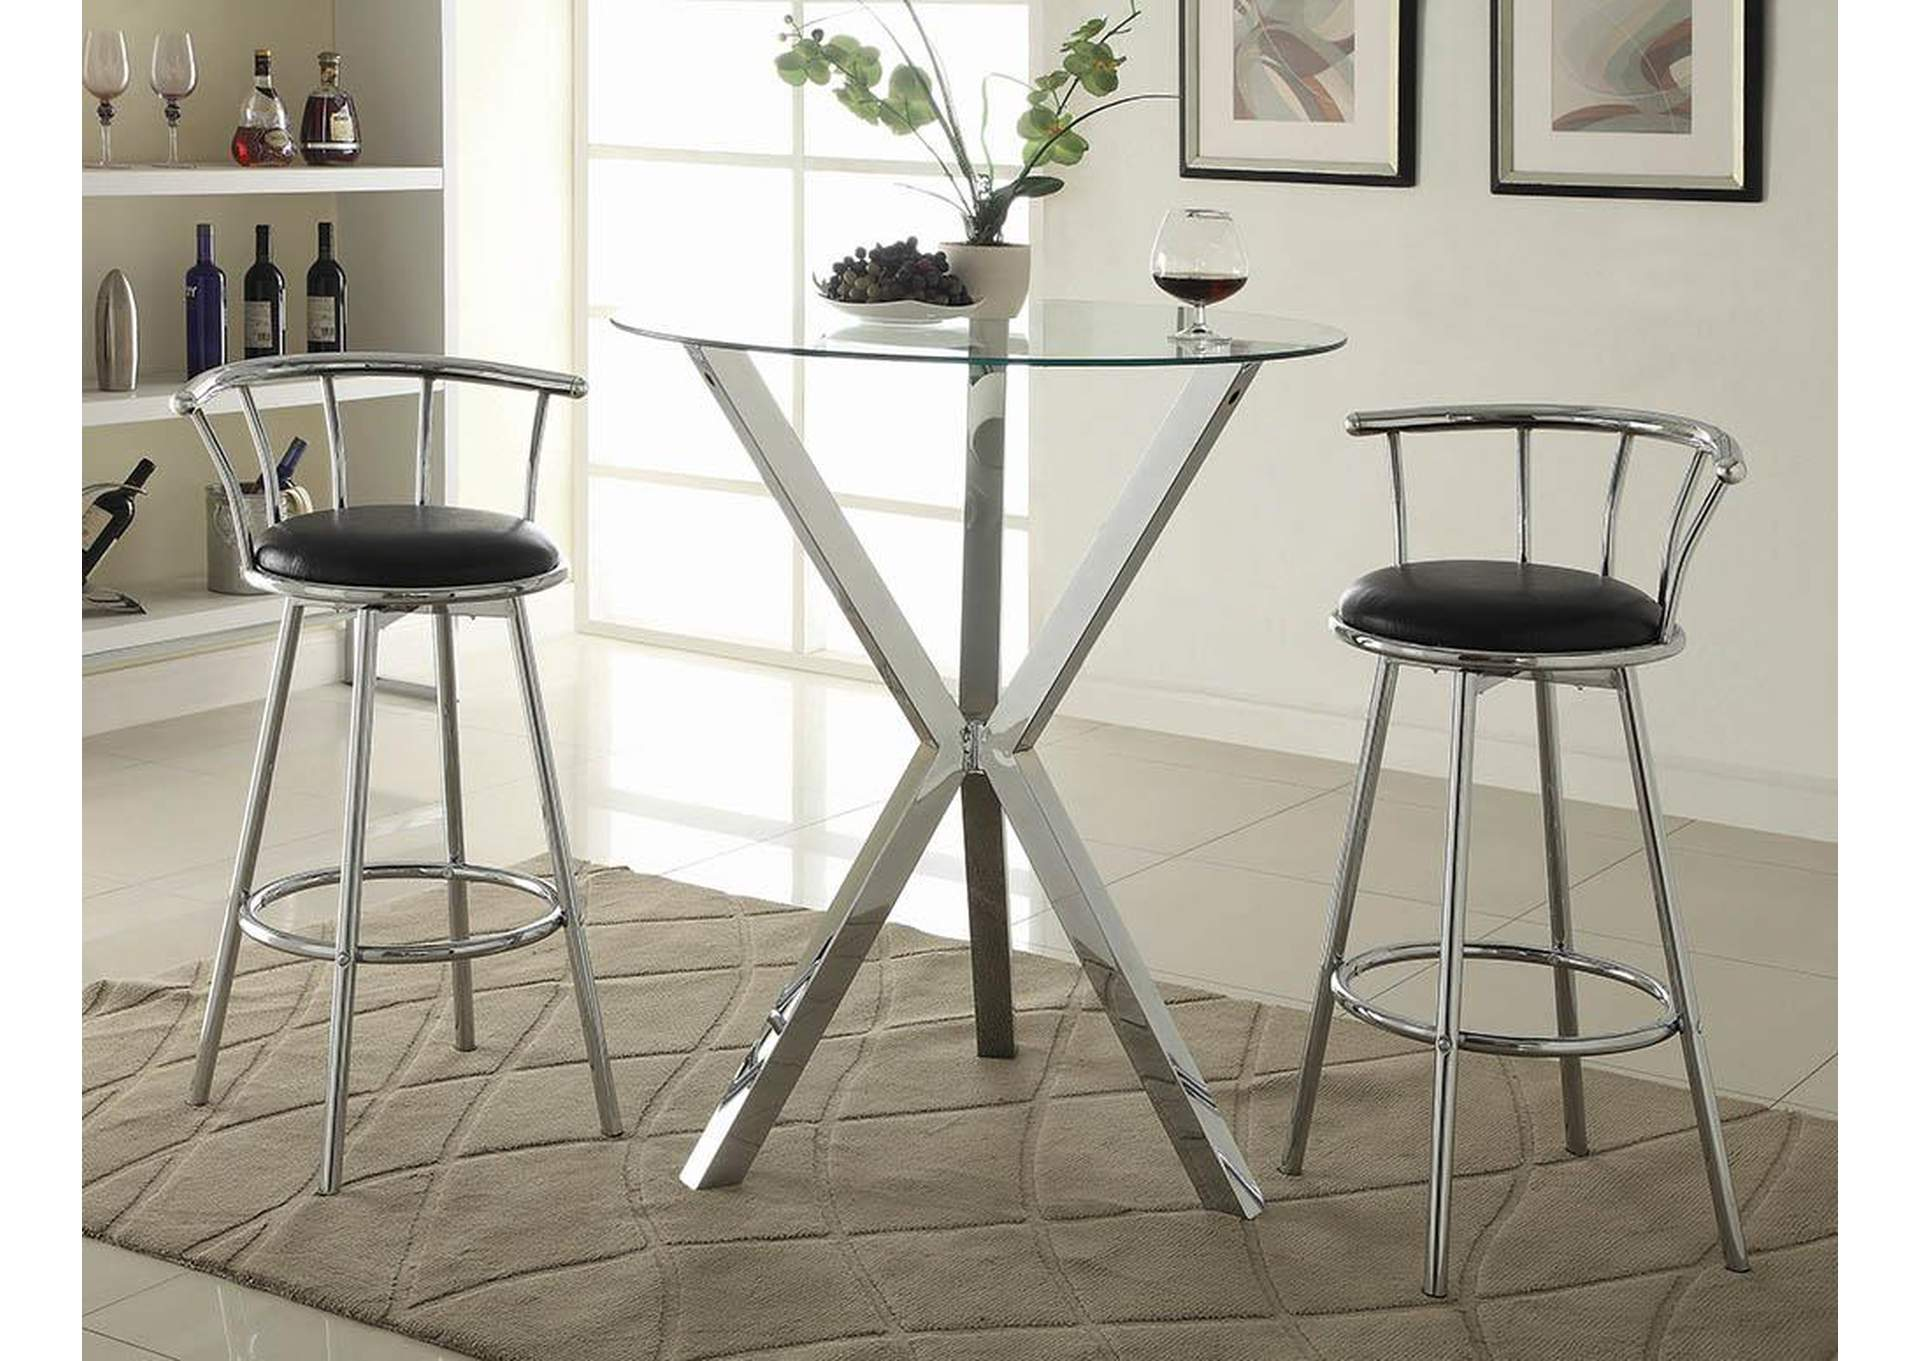 Chrome-Plated Swivel Bar Stool (Set of 2),Coaster Furniture